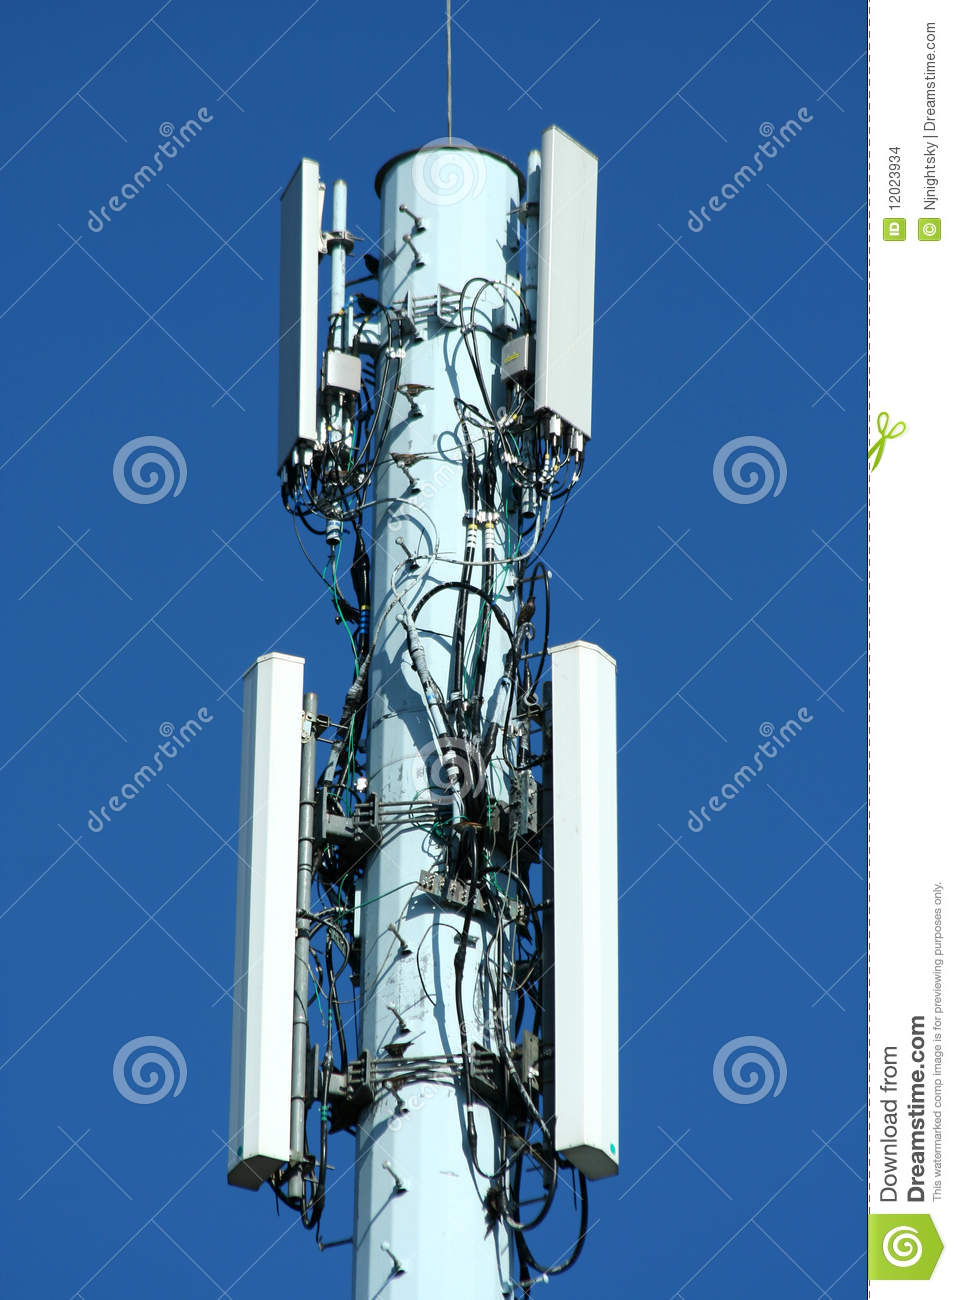 Radio Tower Stock Images - Image: 12023934